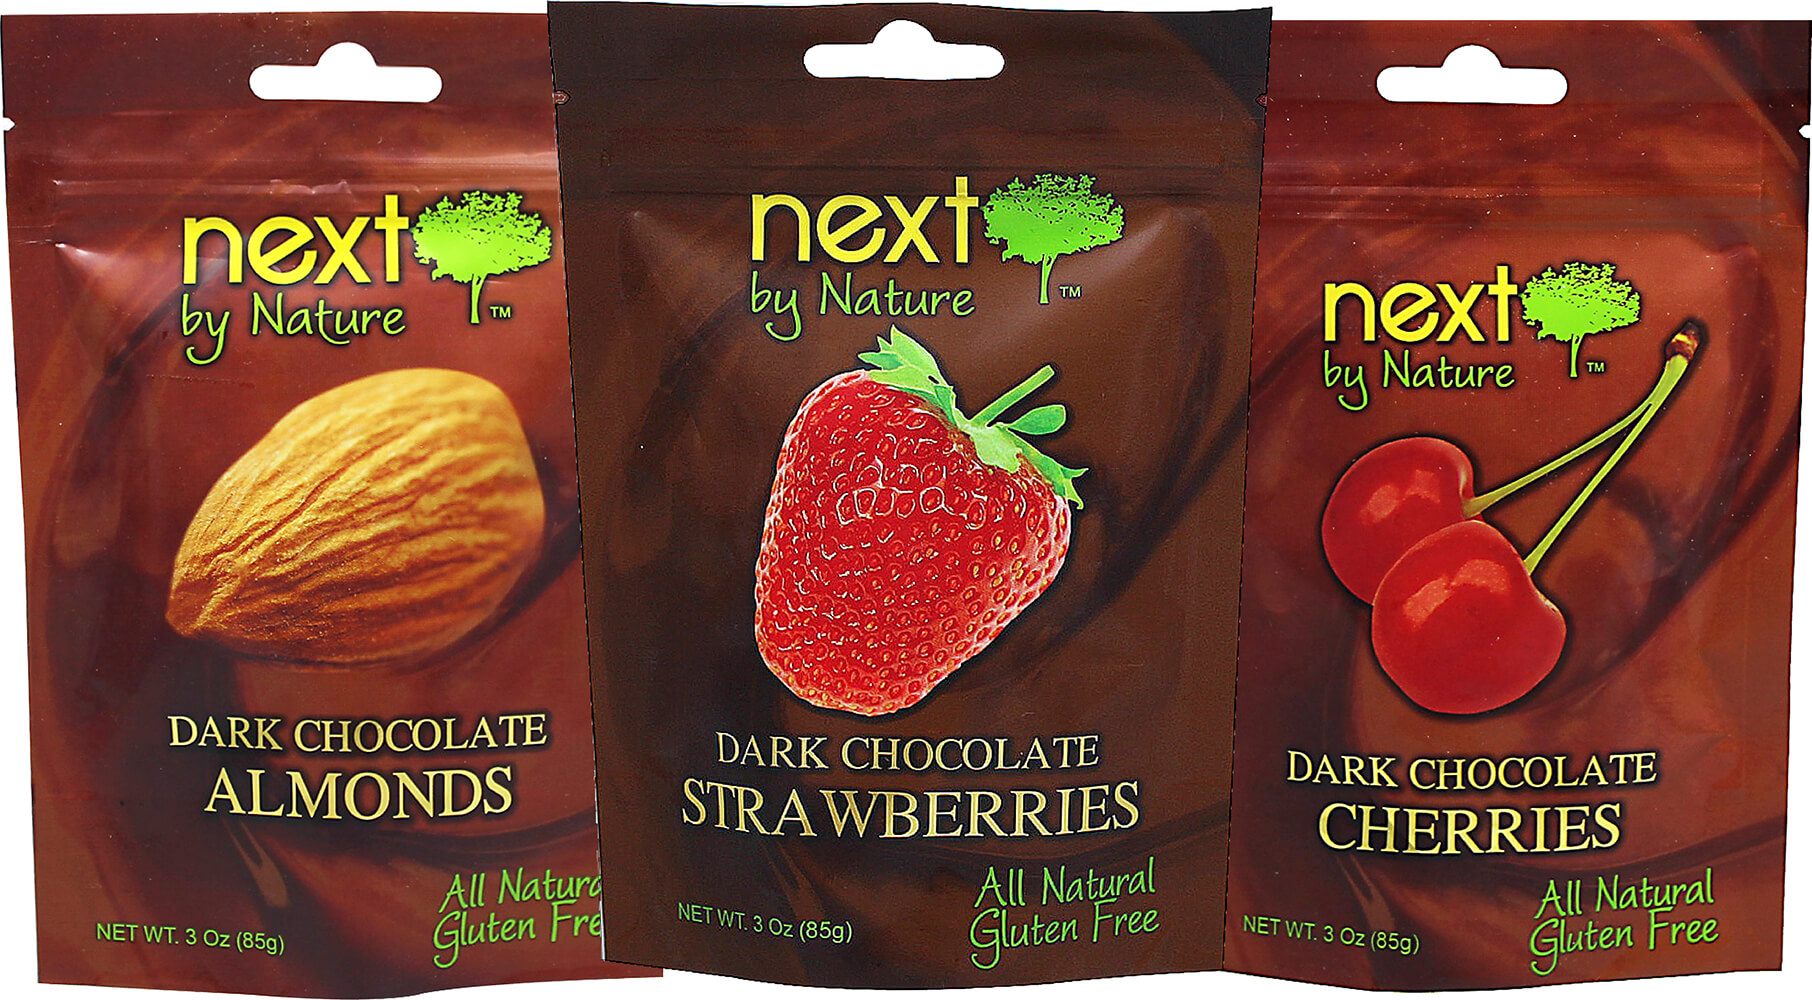 Next by Nature Dark Chocolate Kit